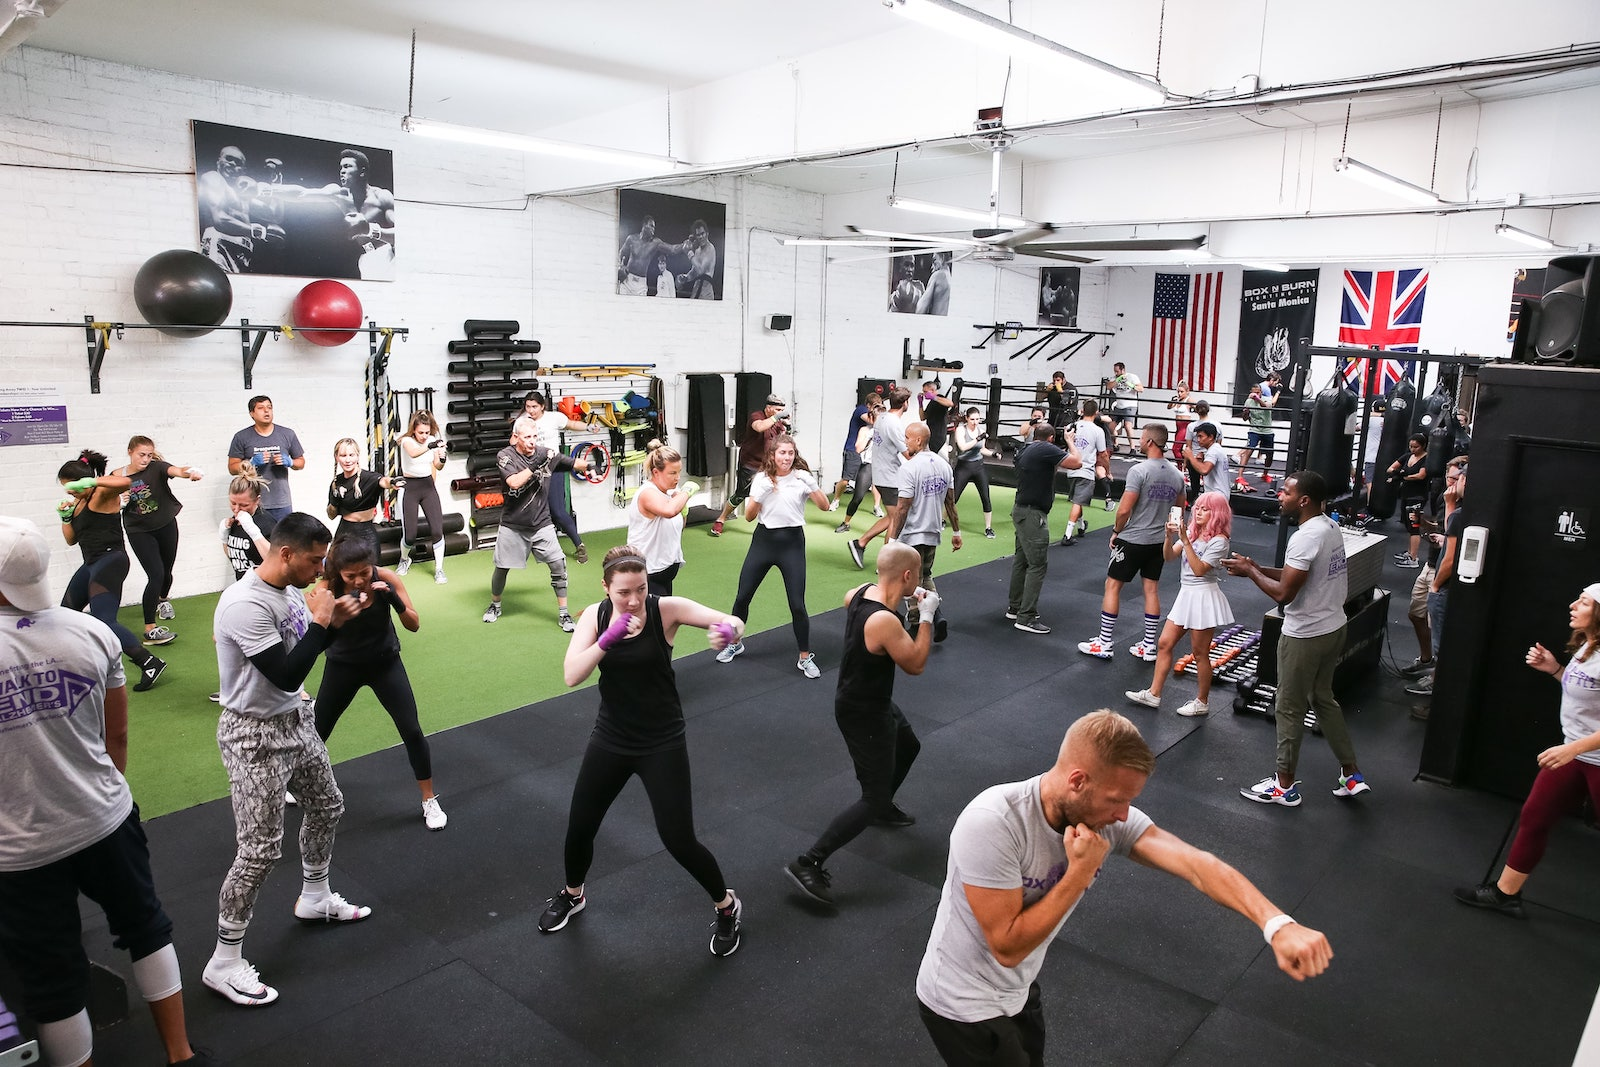 Be a part of a great fitness community at Box N Burn